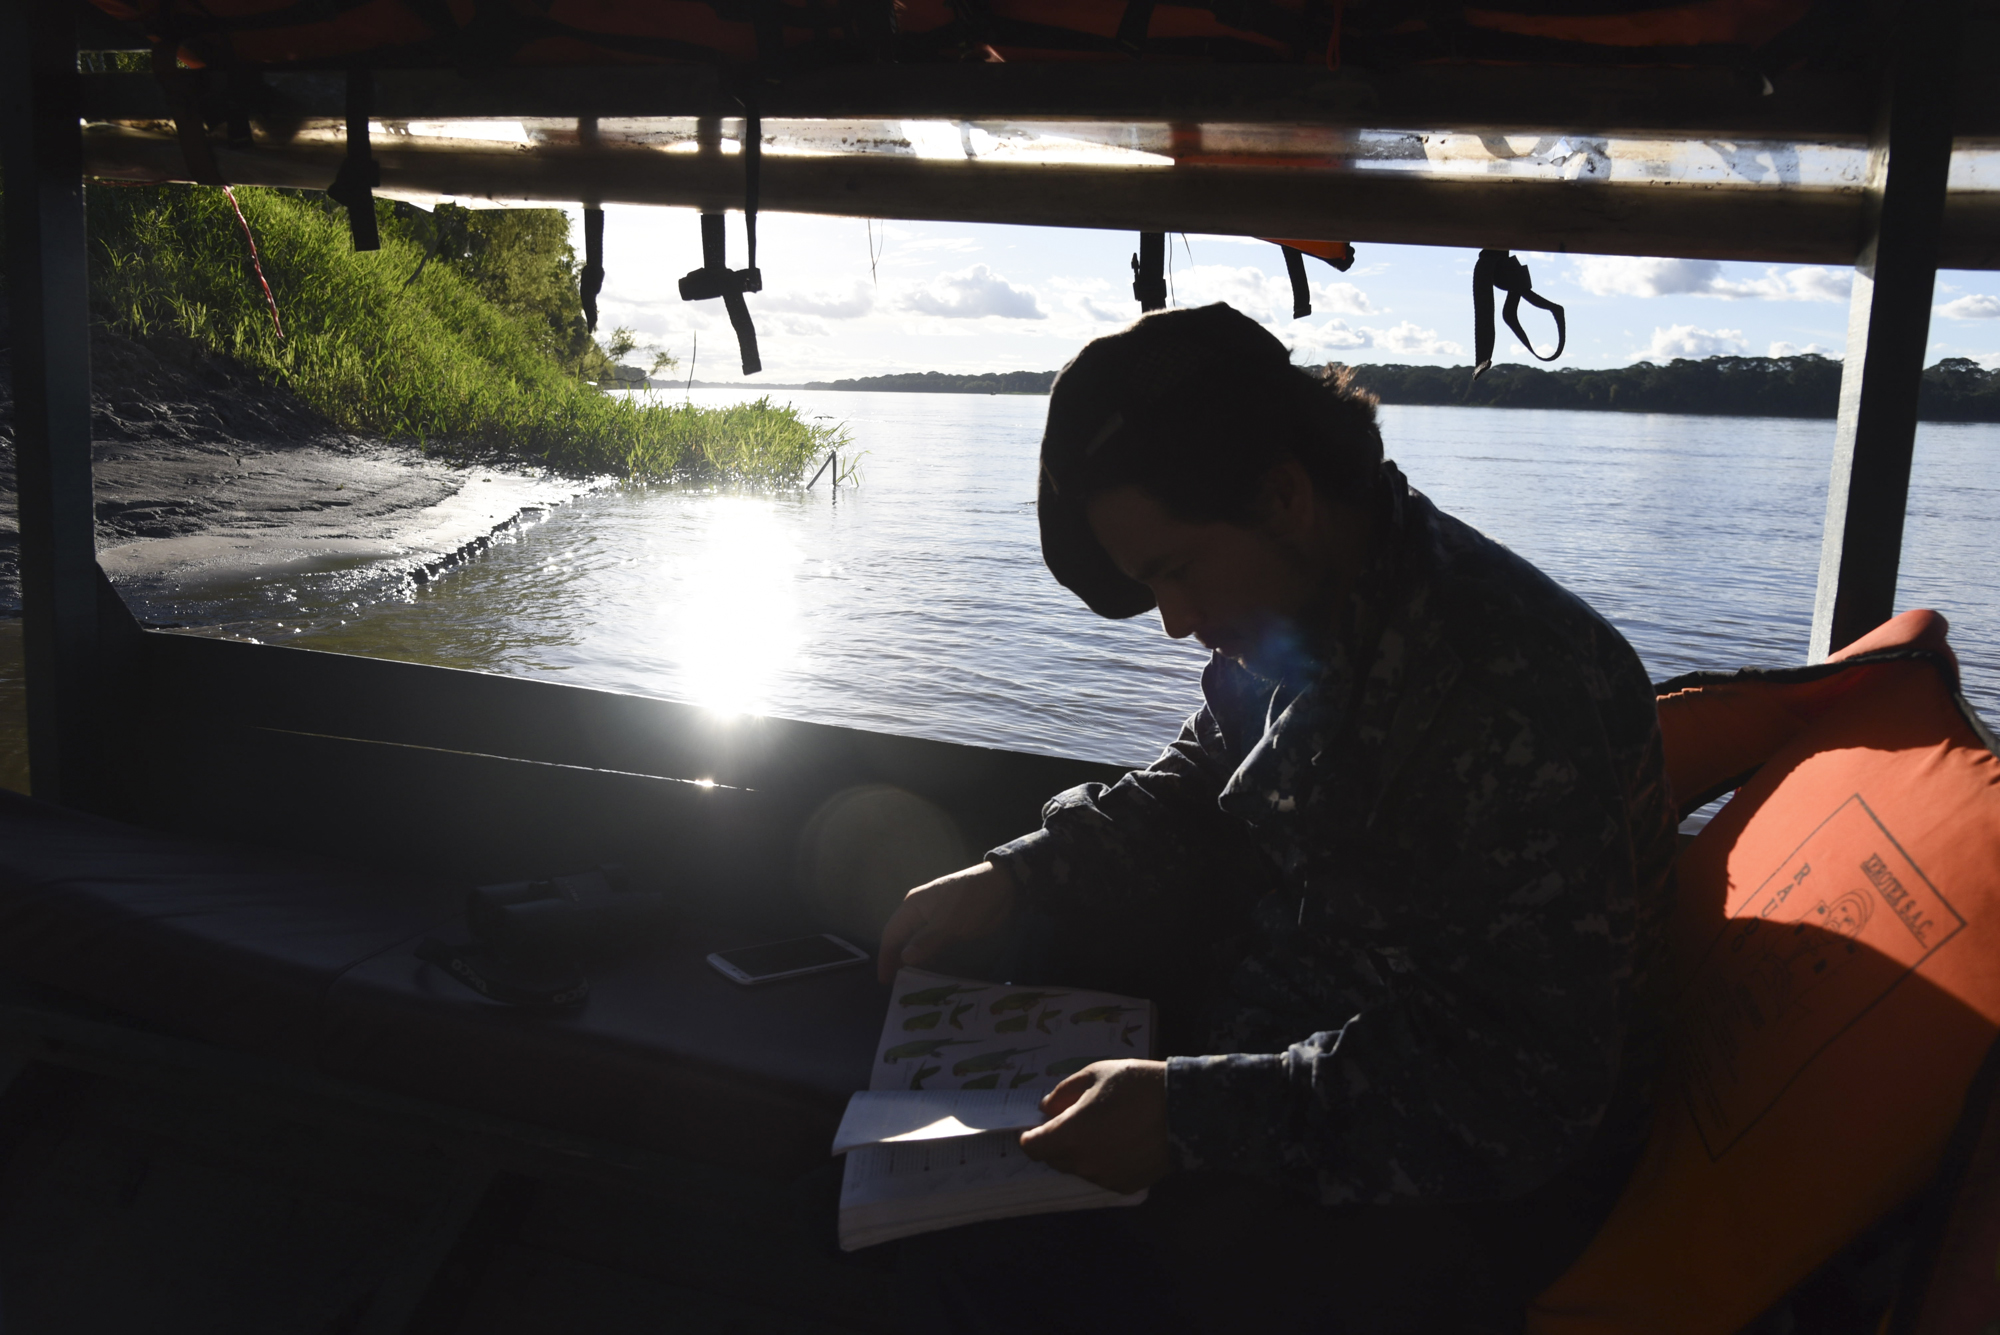 """After registering his Global Big Day results, Yohamir continues to study his """"Birds of Peru"""" book and search for more birds during the boat ride back to camp."""